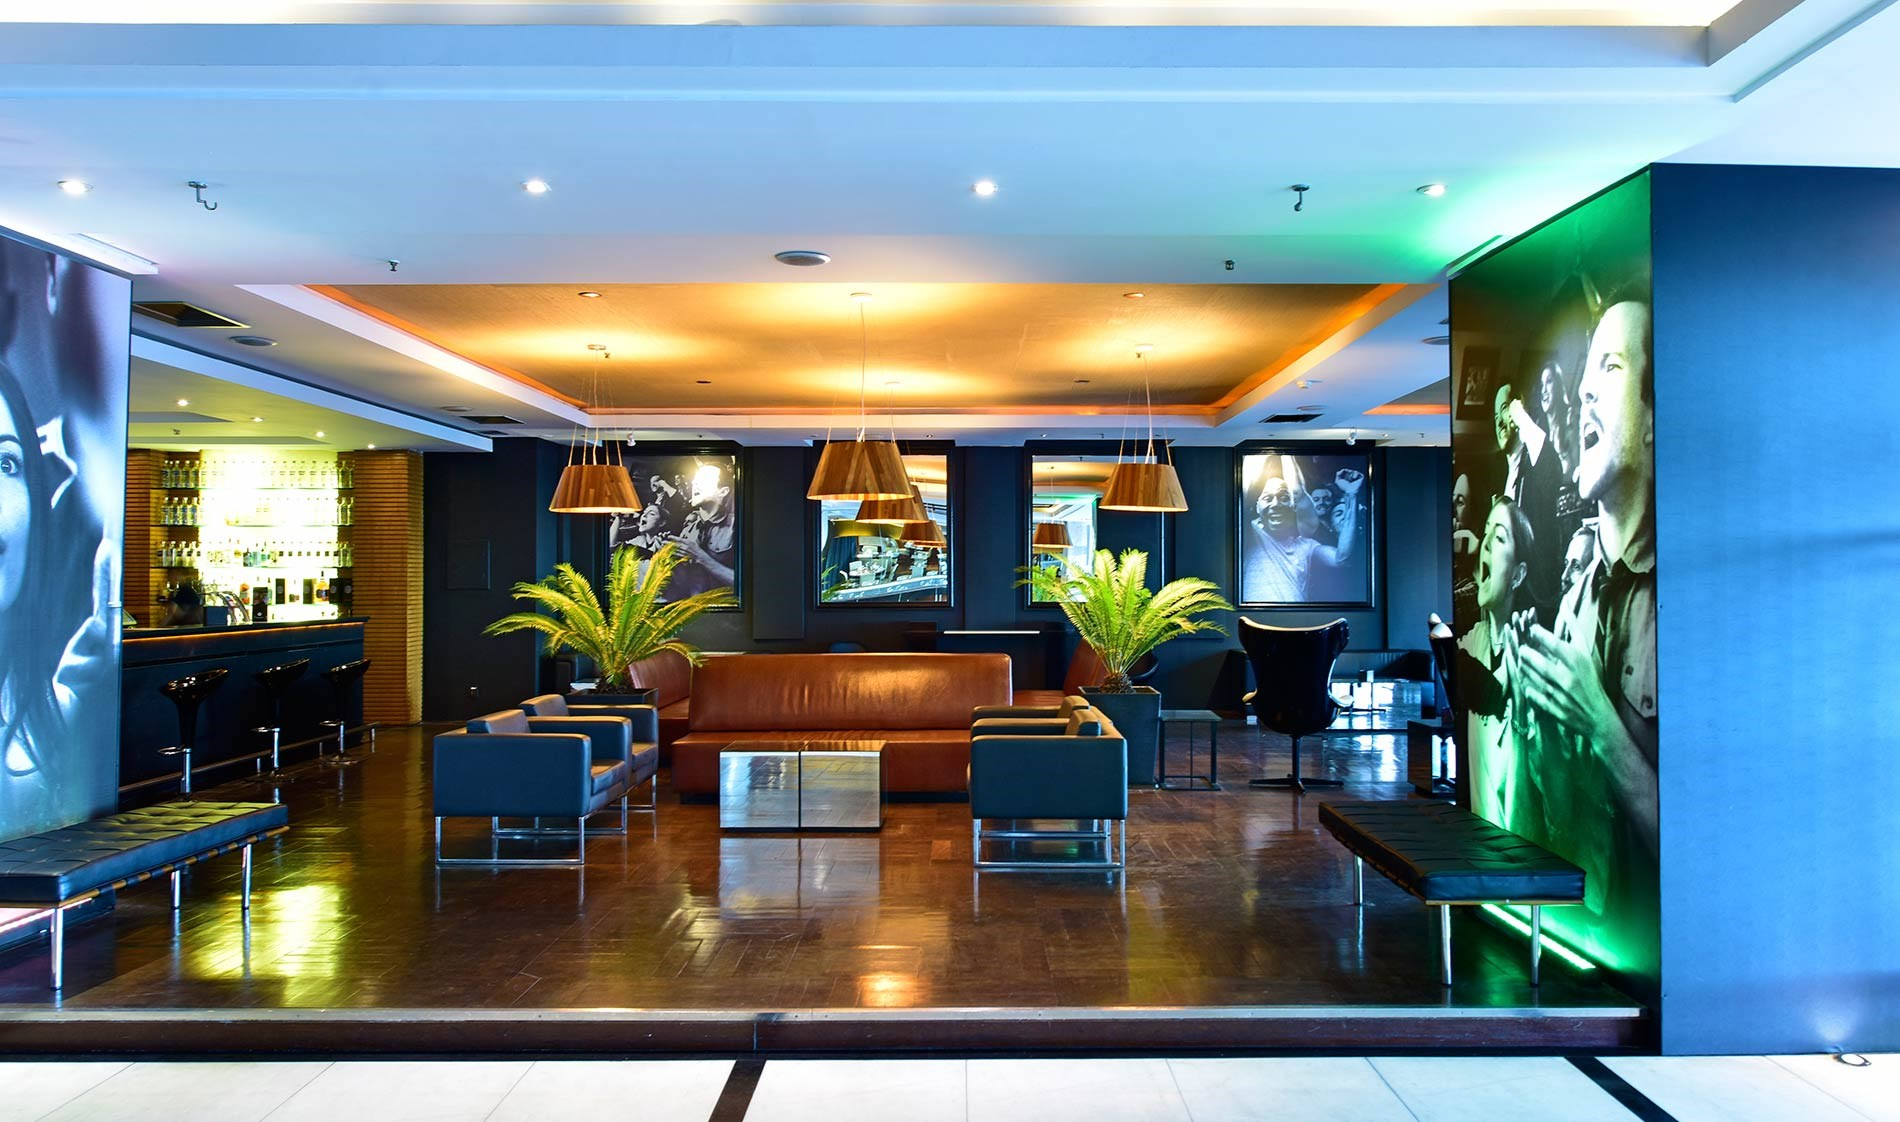 pestana-rio-atlantica-lobby-bar